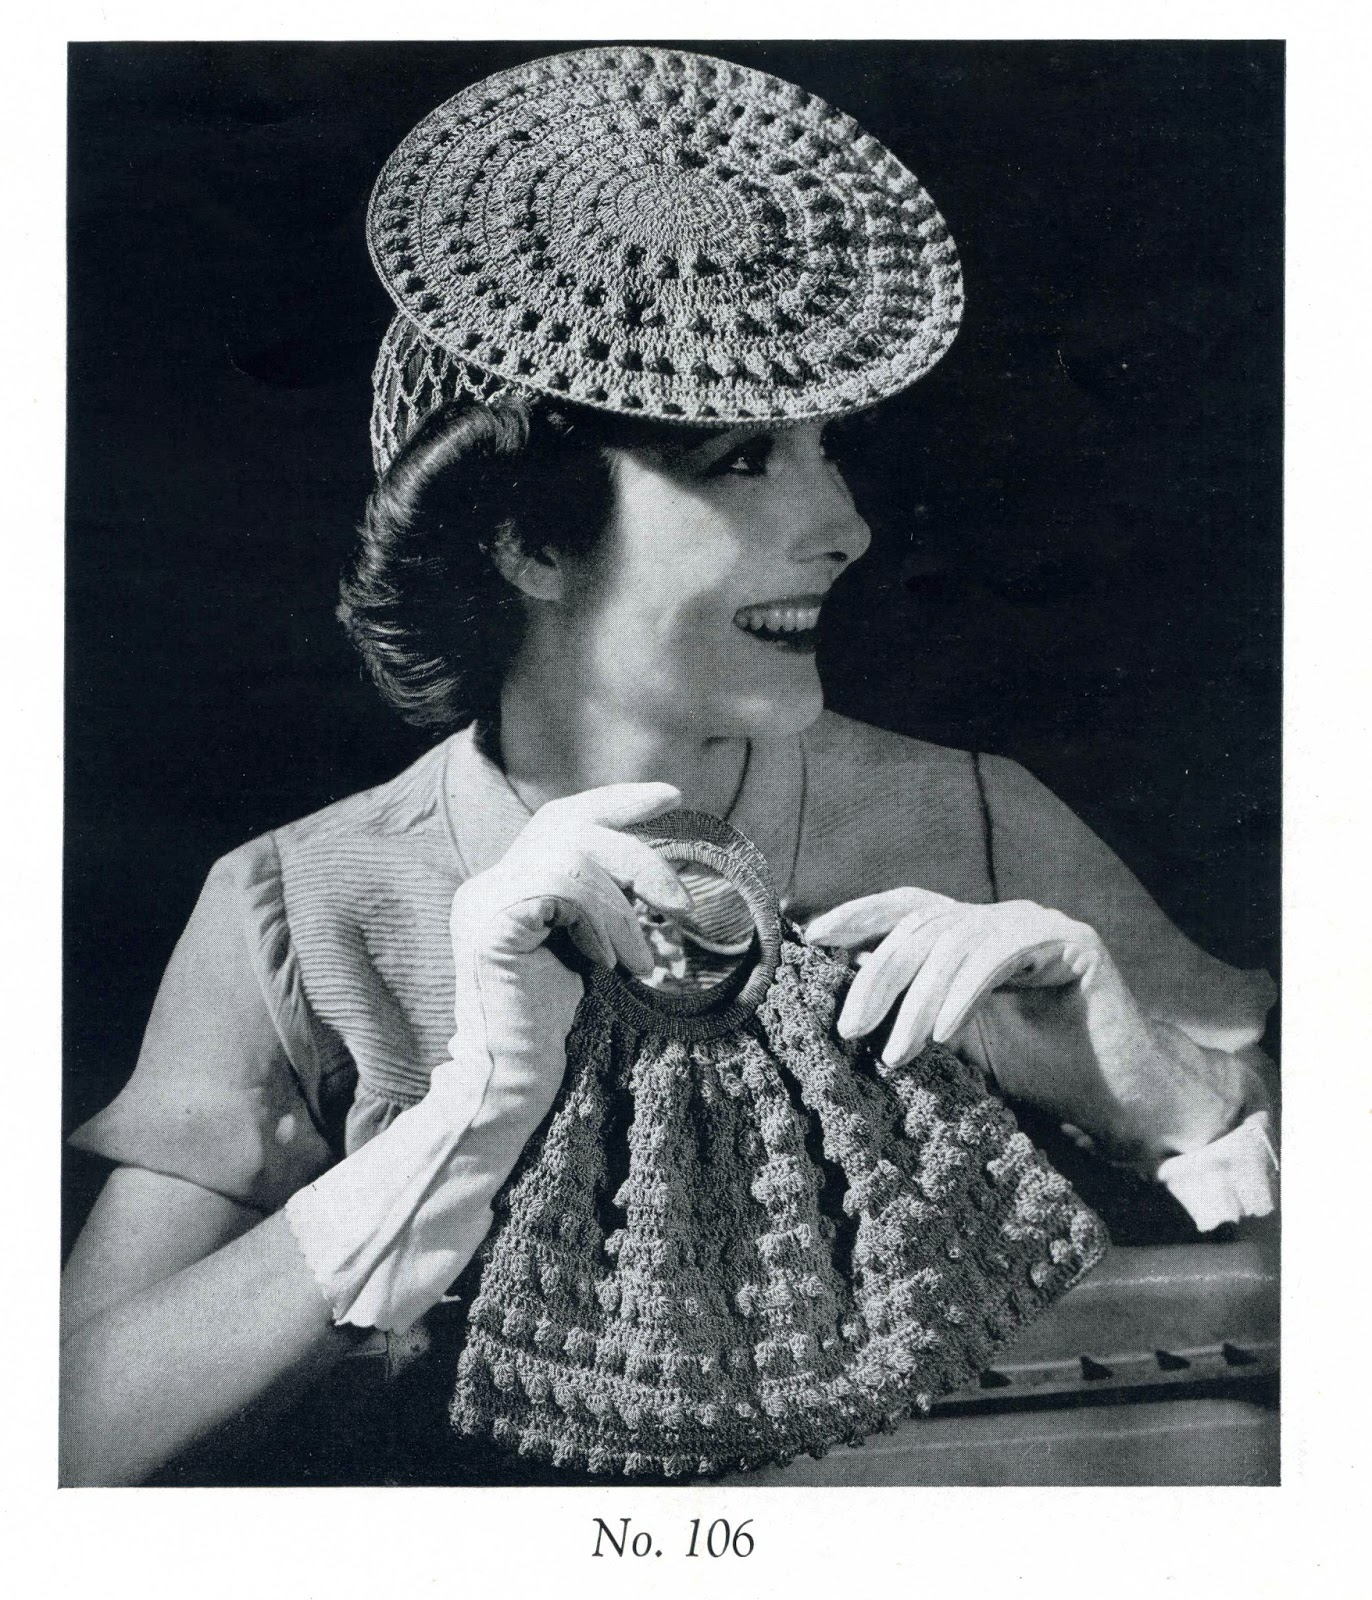 Here is a vintage pattern from my collection the hat is called a hoop